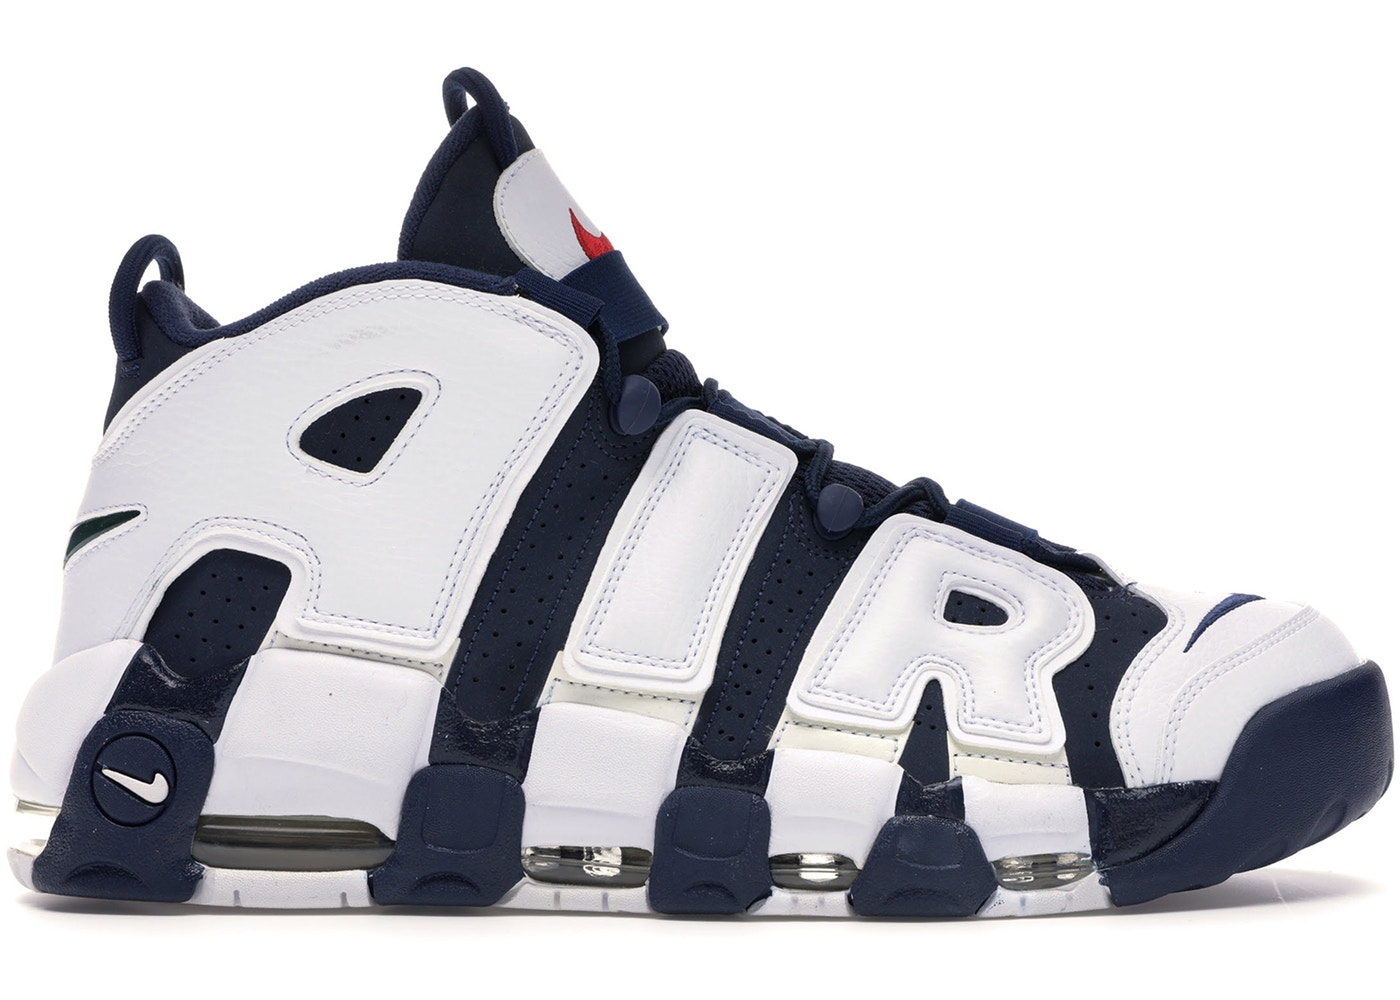 ナイキ NIKE エア アップテンポ スニーカー 【 AIR UPTEMPO MORE OLYMPICS 2012 MIDNIGHT NAVY NAVYWHITESPIRIT RED 】 メンズ